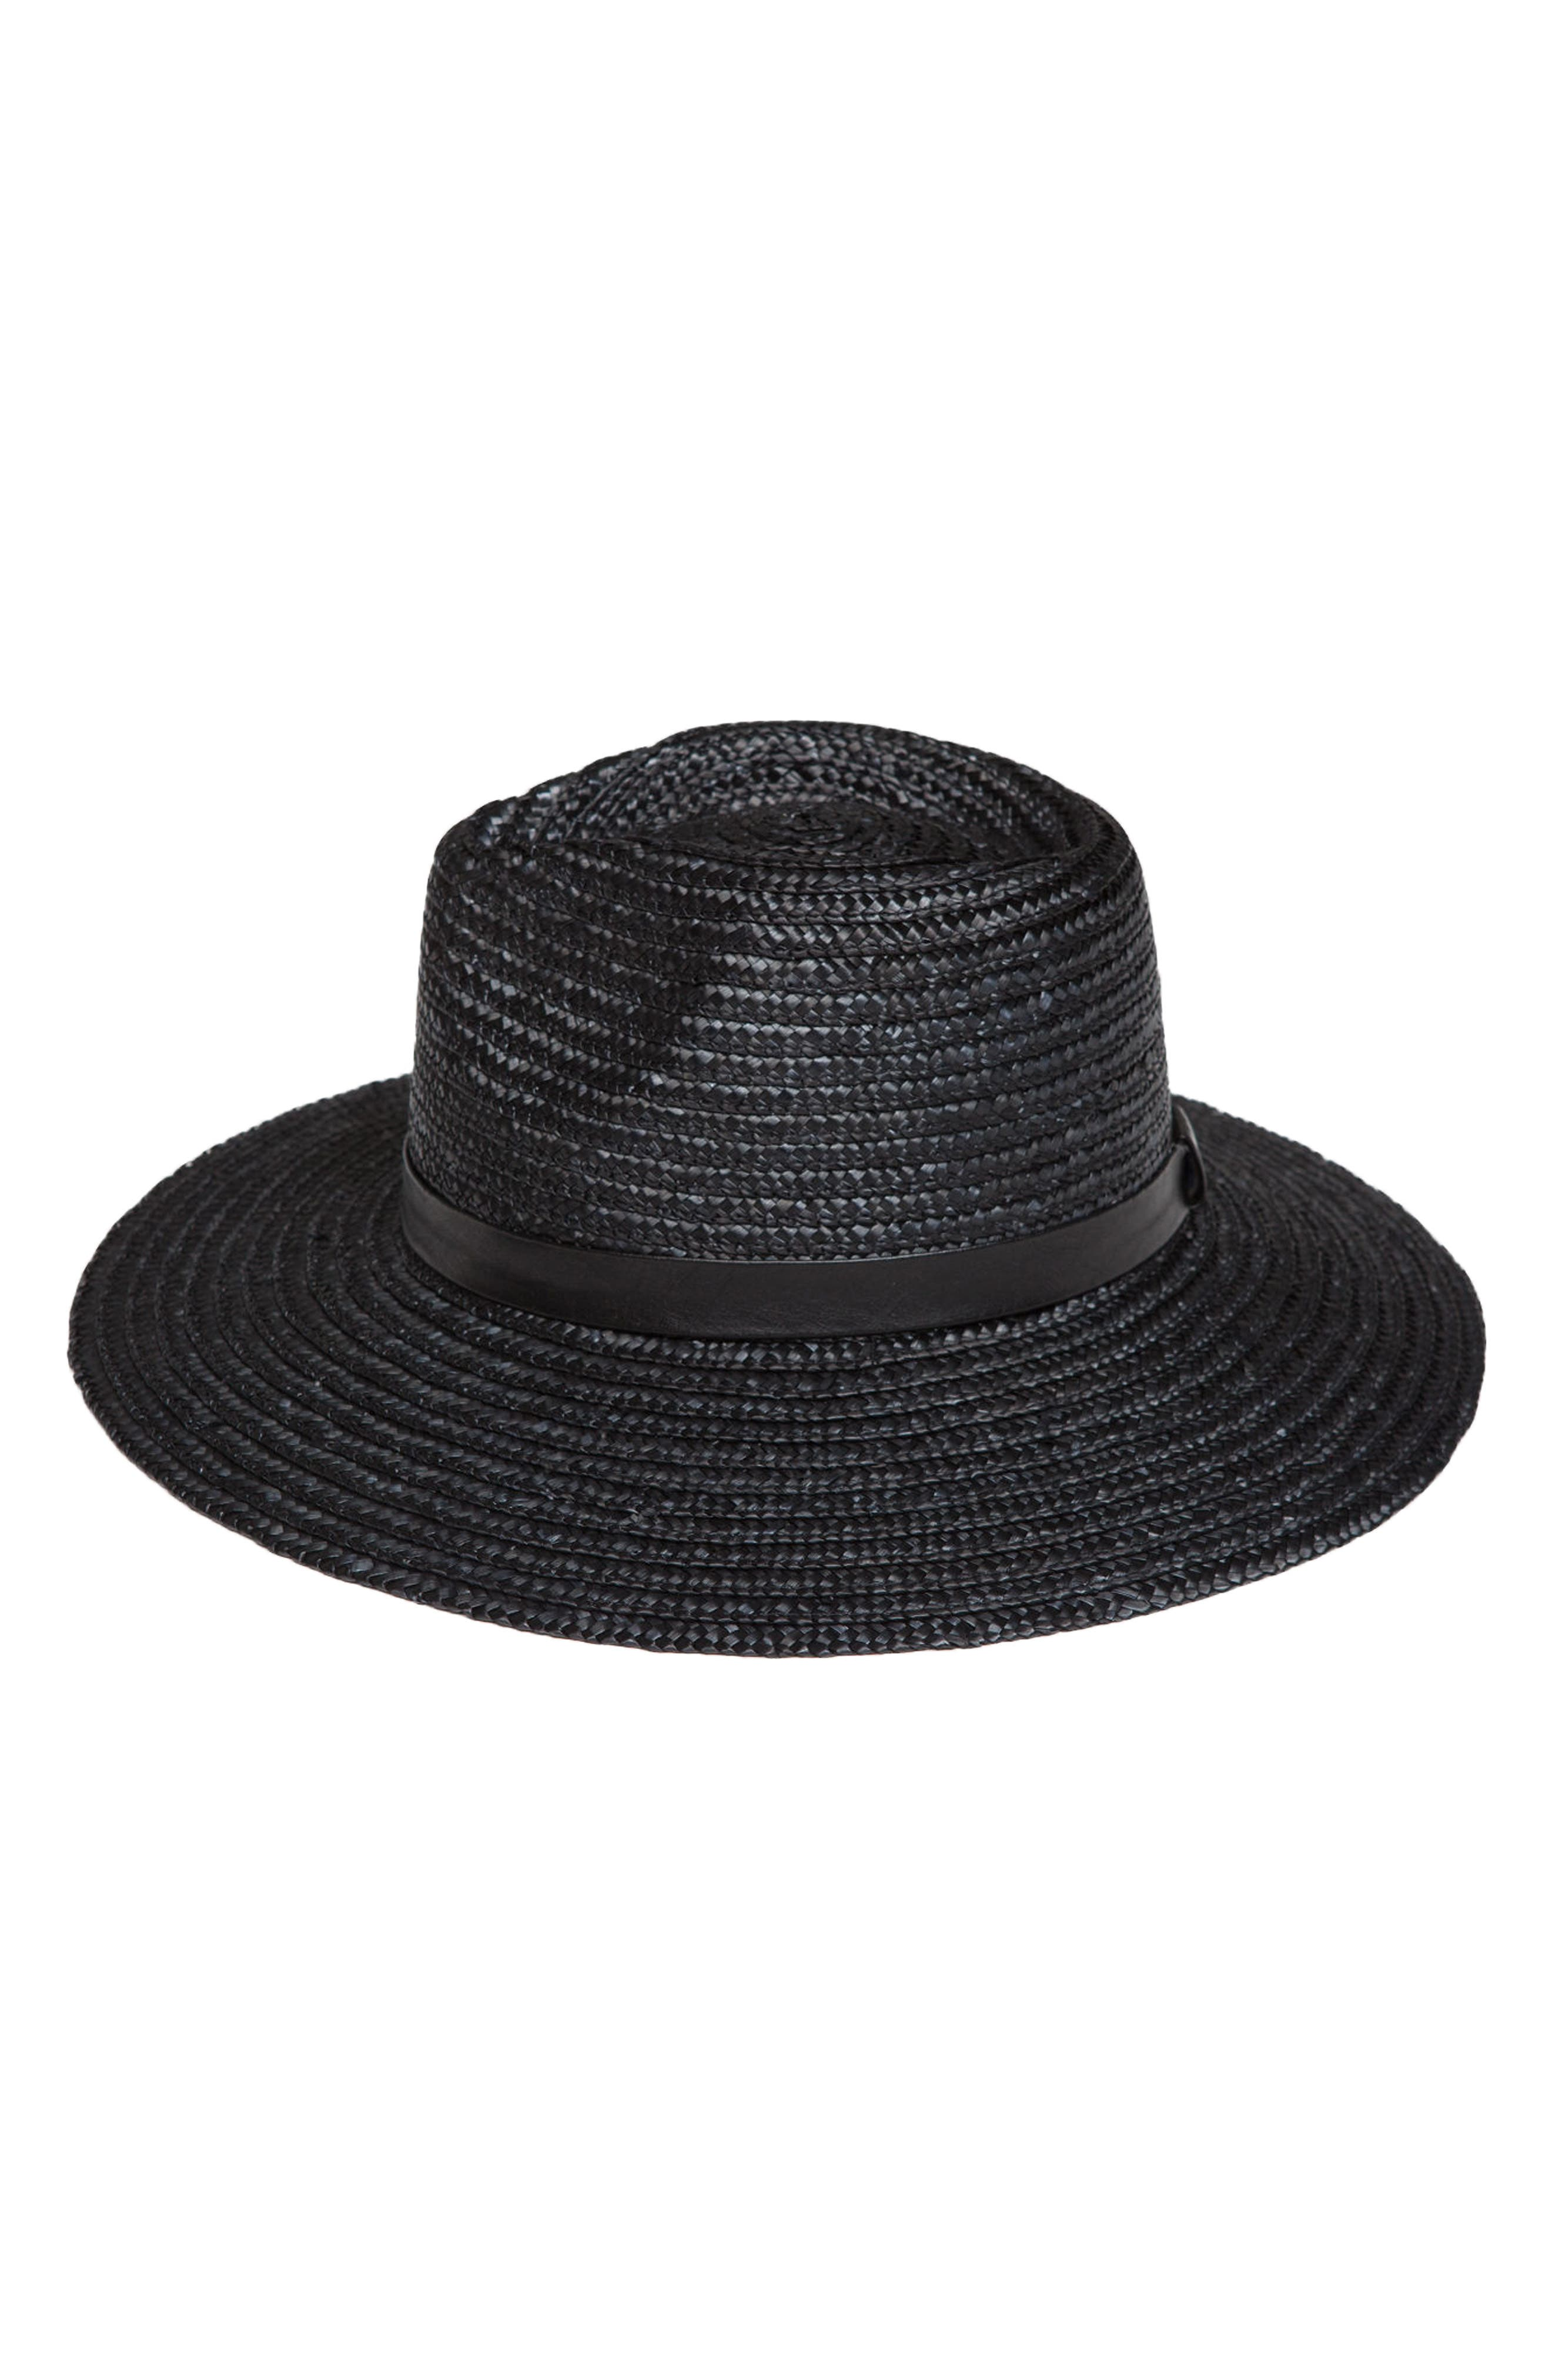 Don't Look Back Straw Hat,                             Main thumbnail 1, color,                             001